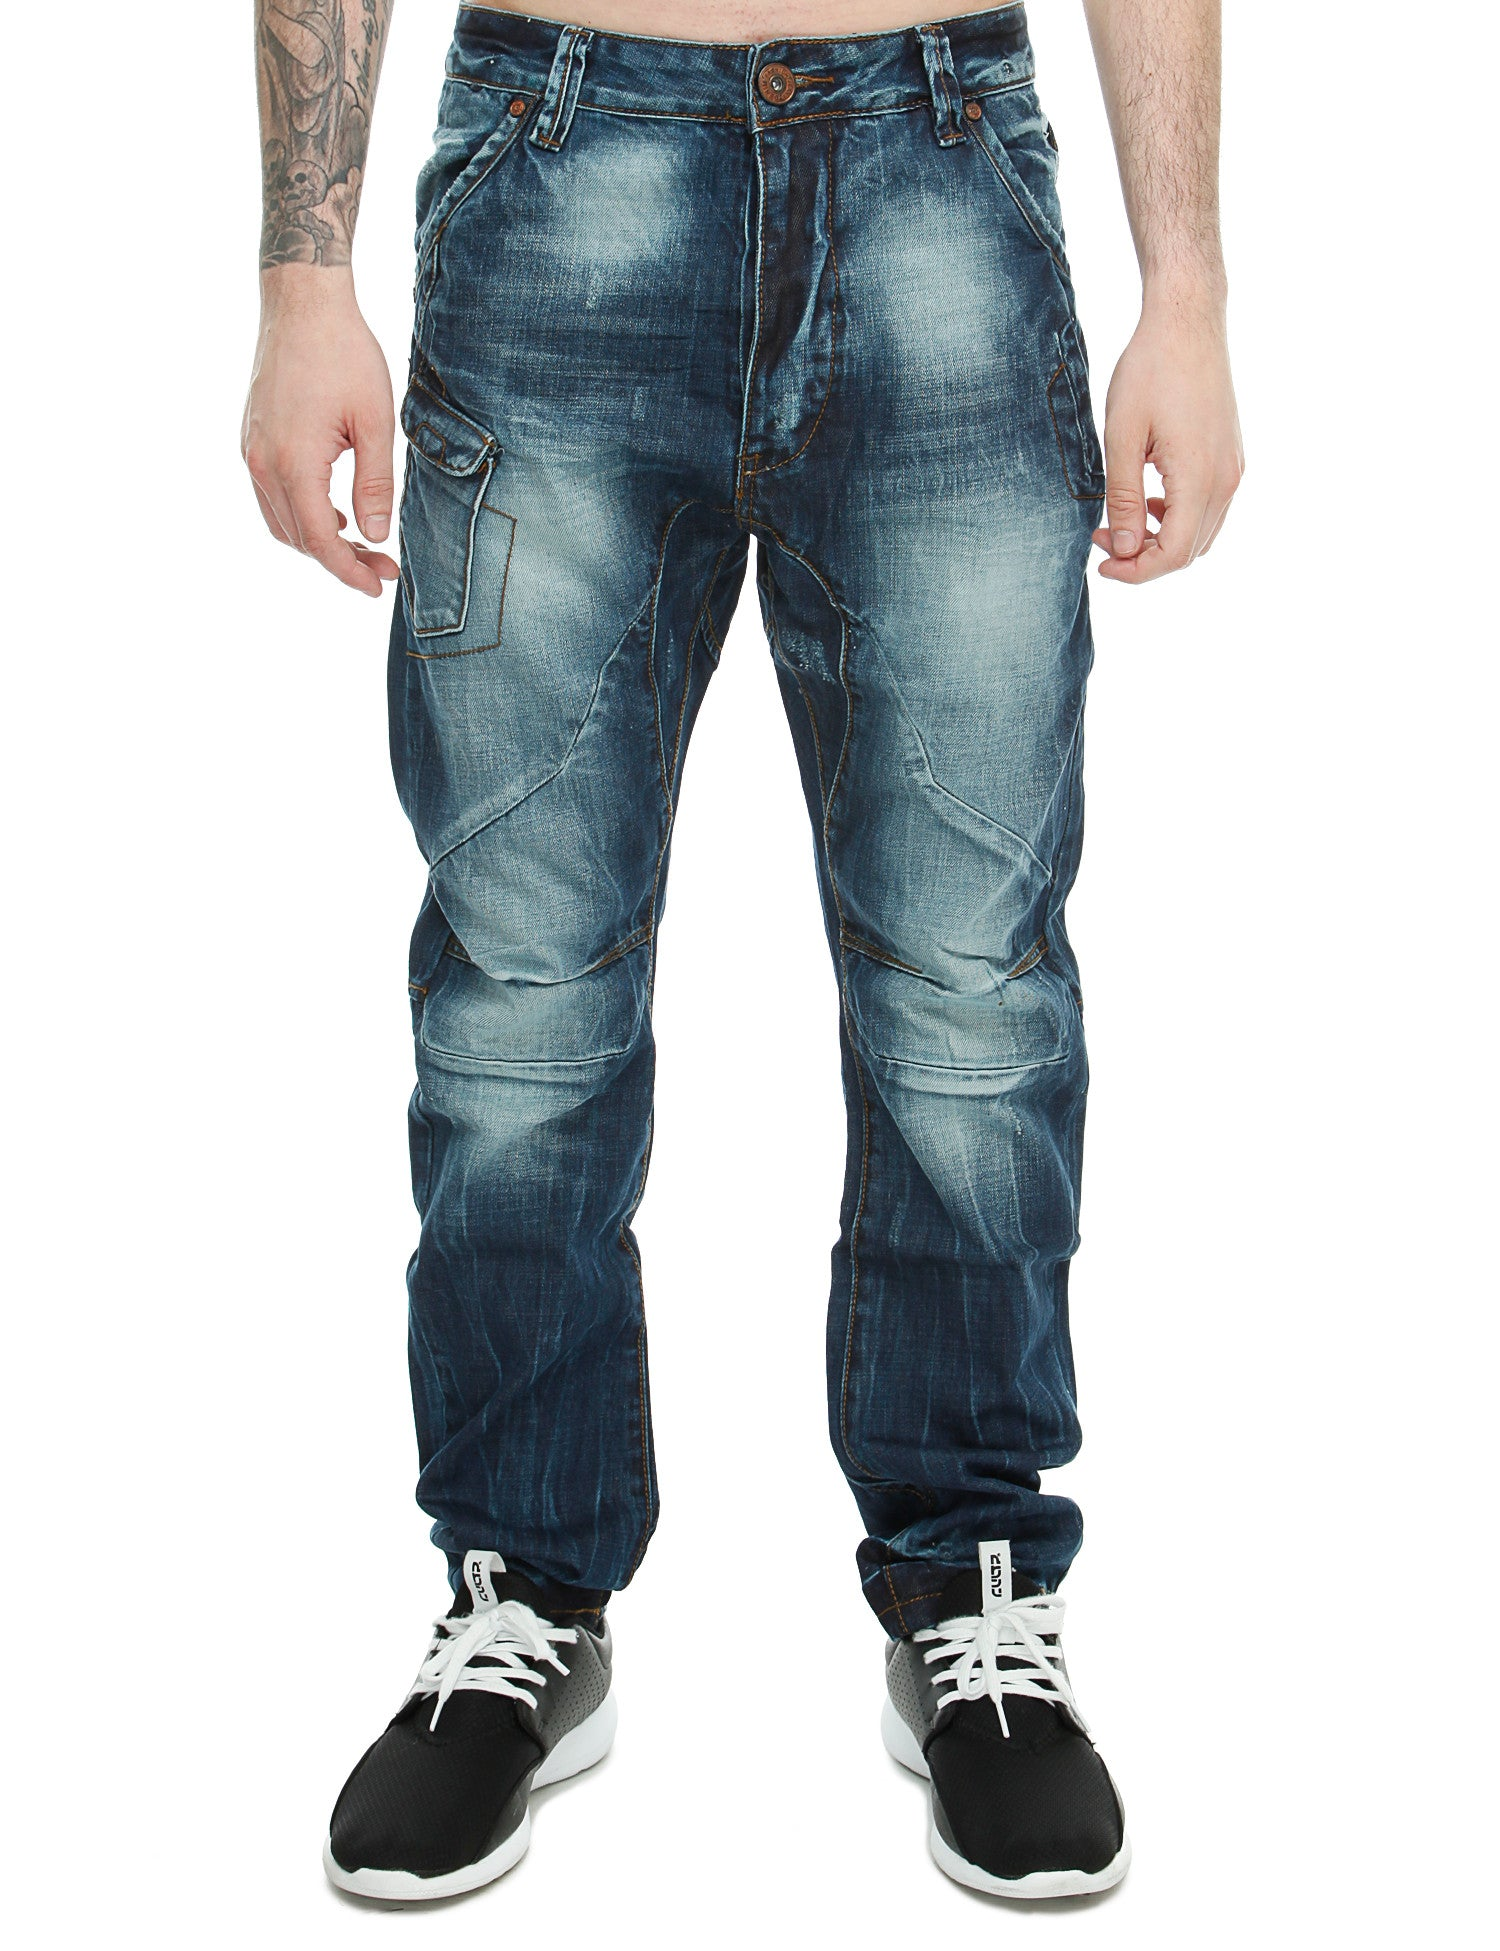 Ross Carra Slim Fit Jeans X8421# Wash Blue